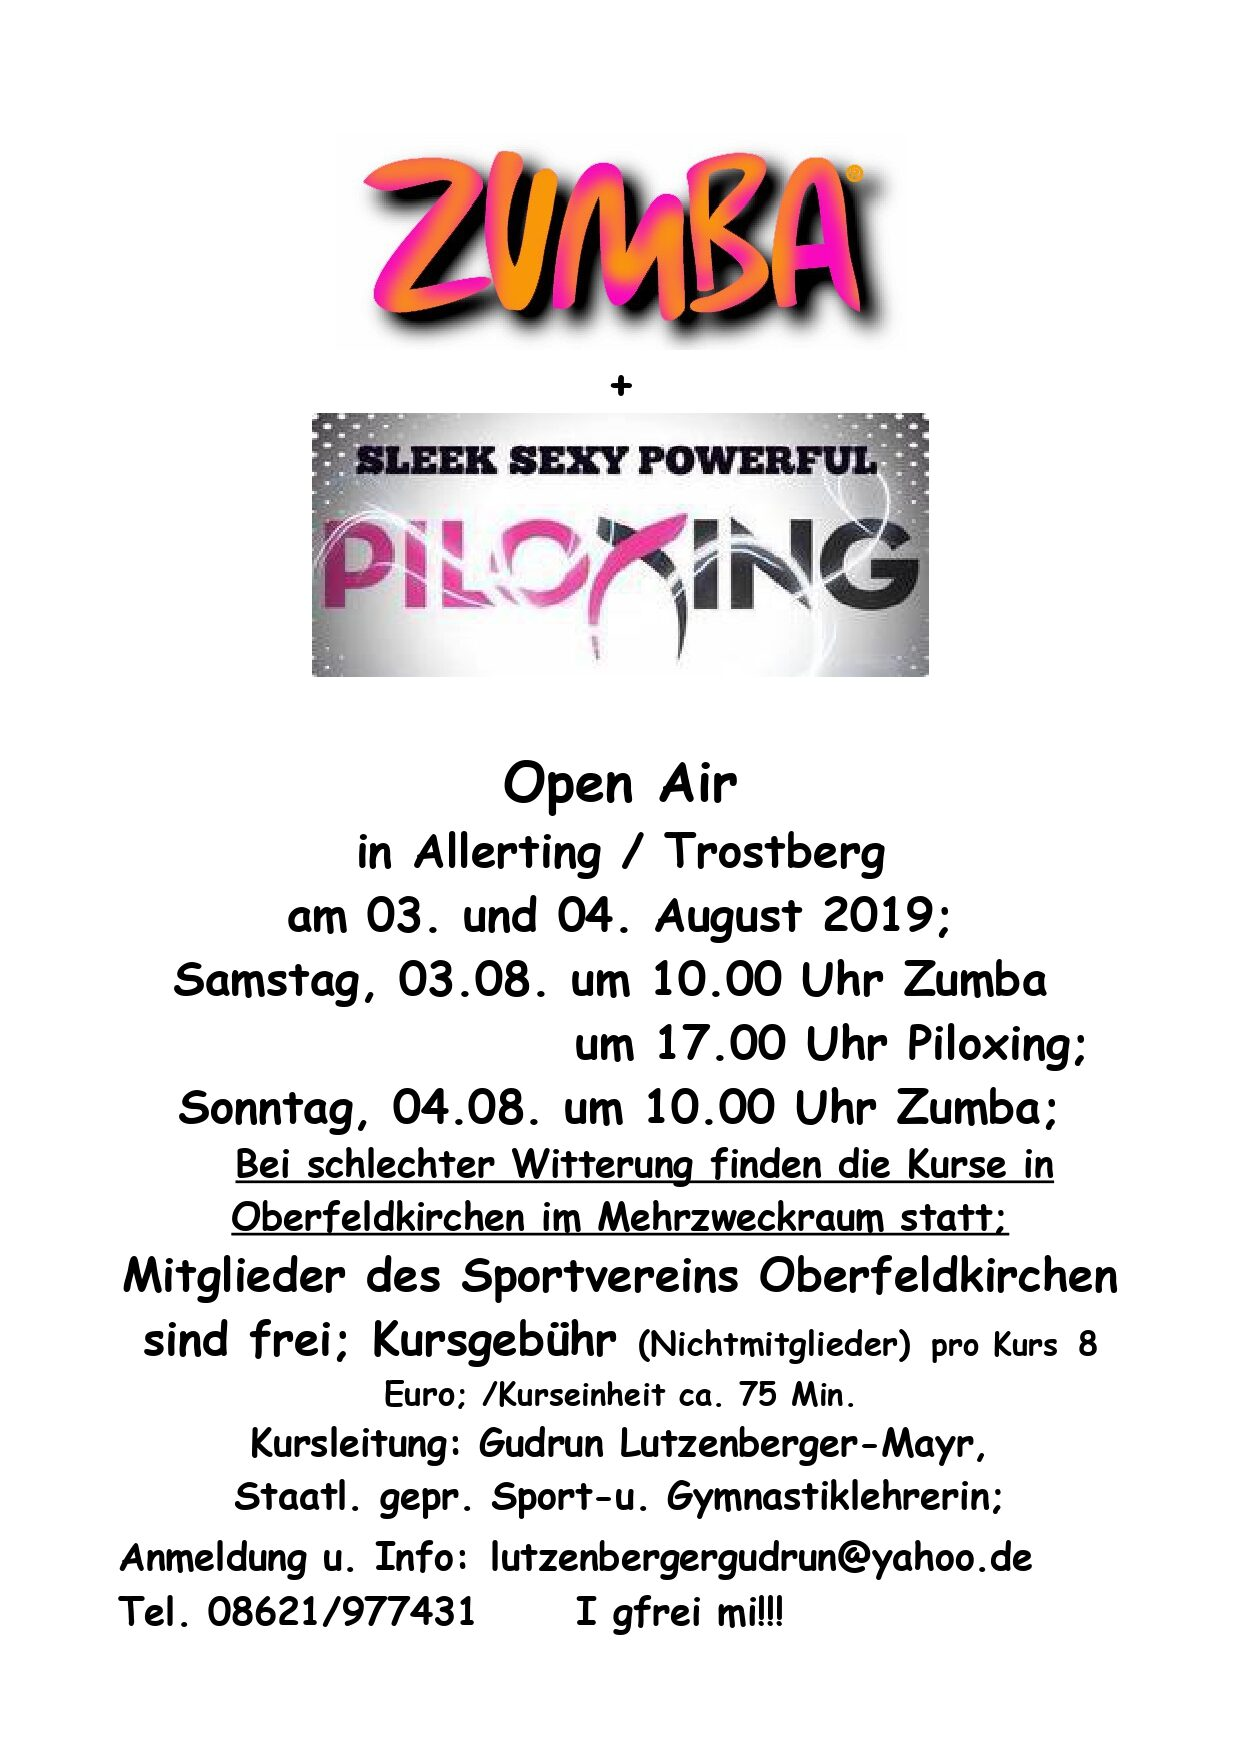 Zumba_Open_Air_Allerting_page-0001(1).jpg